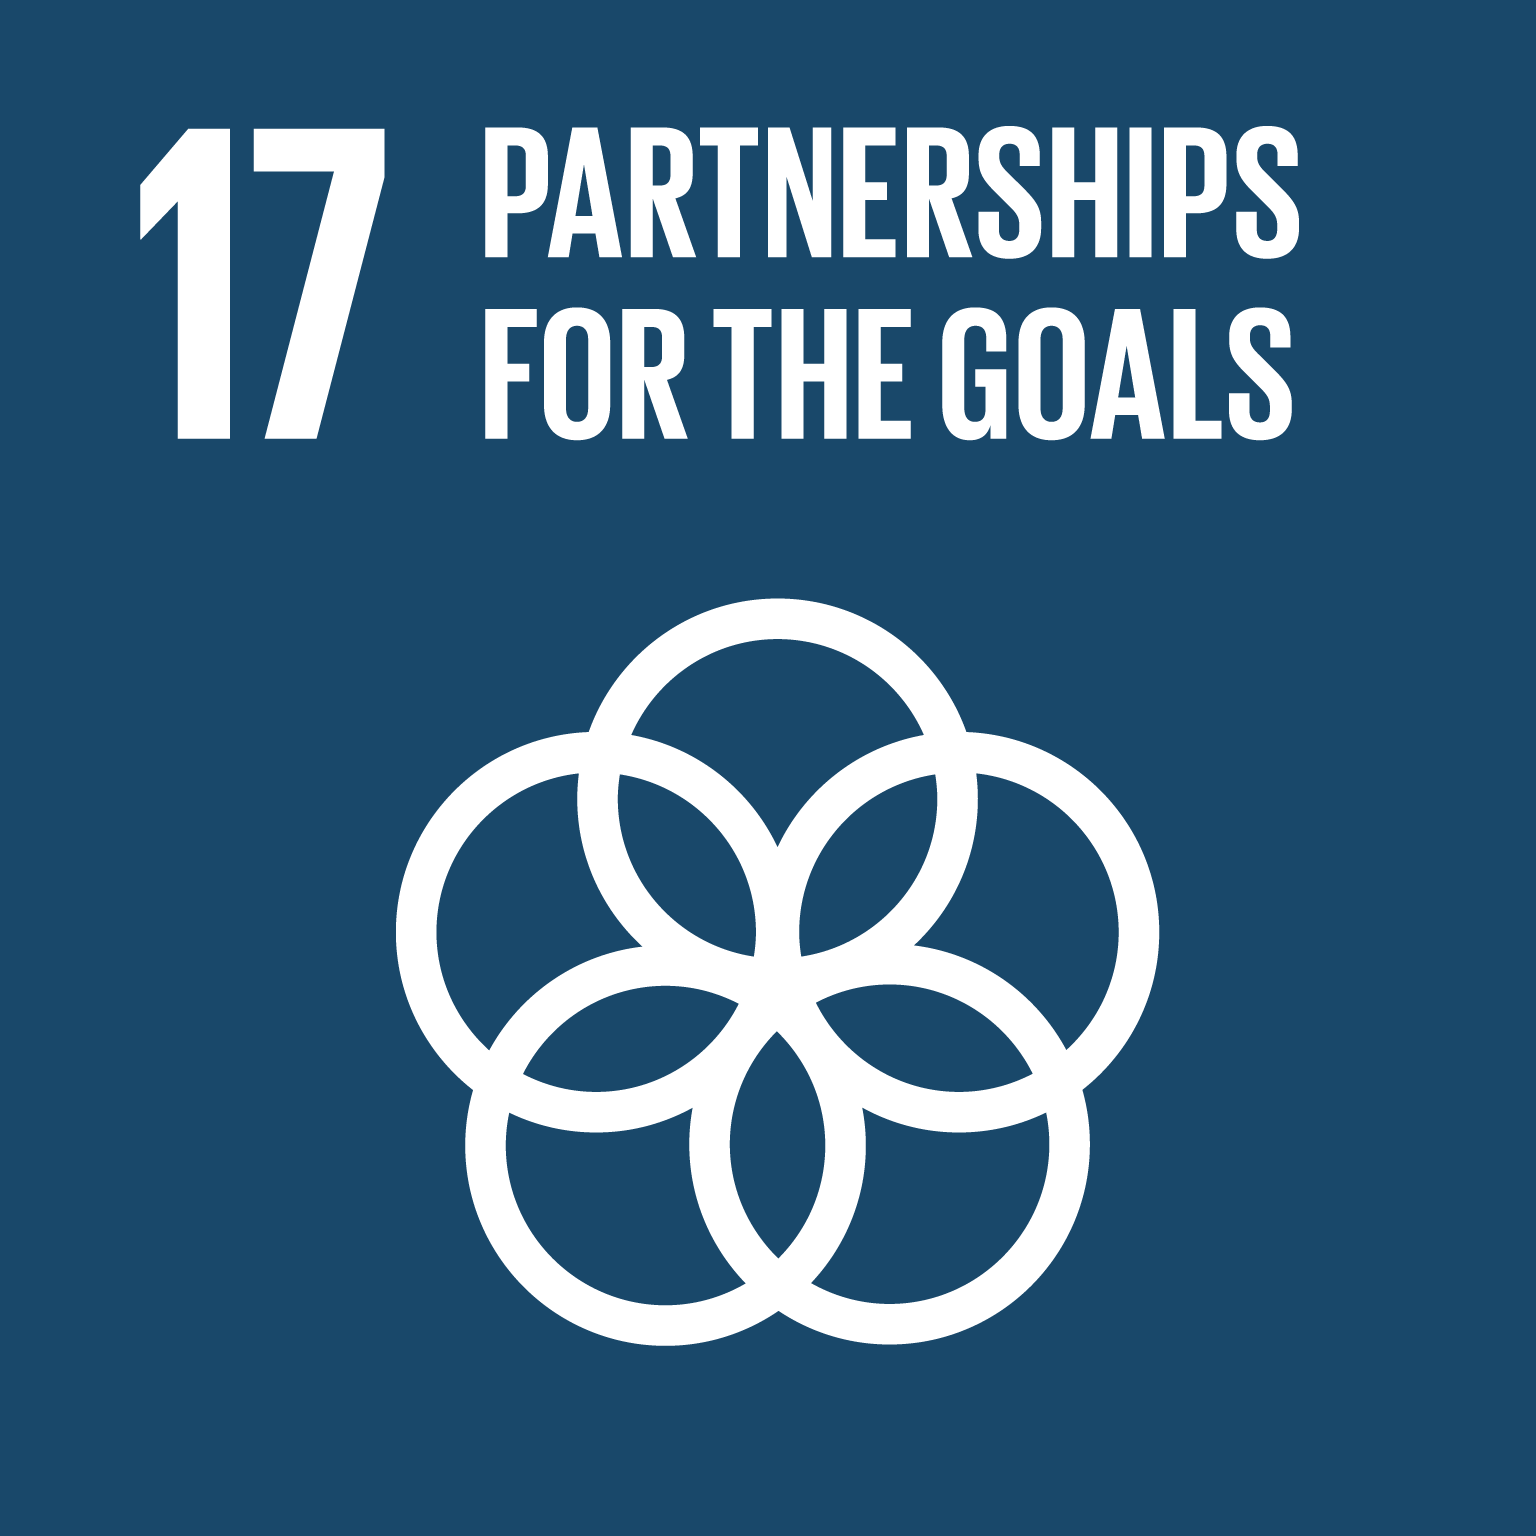 sdg icon #17 PARTNERSHIPS FOR THE GOALS